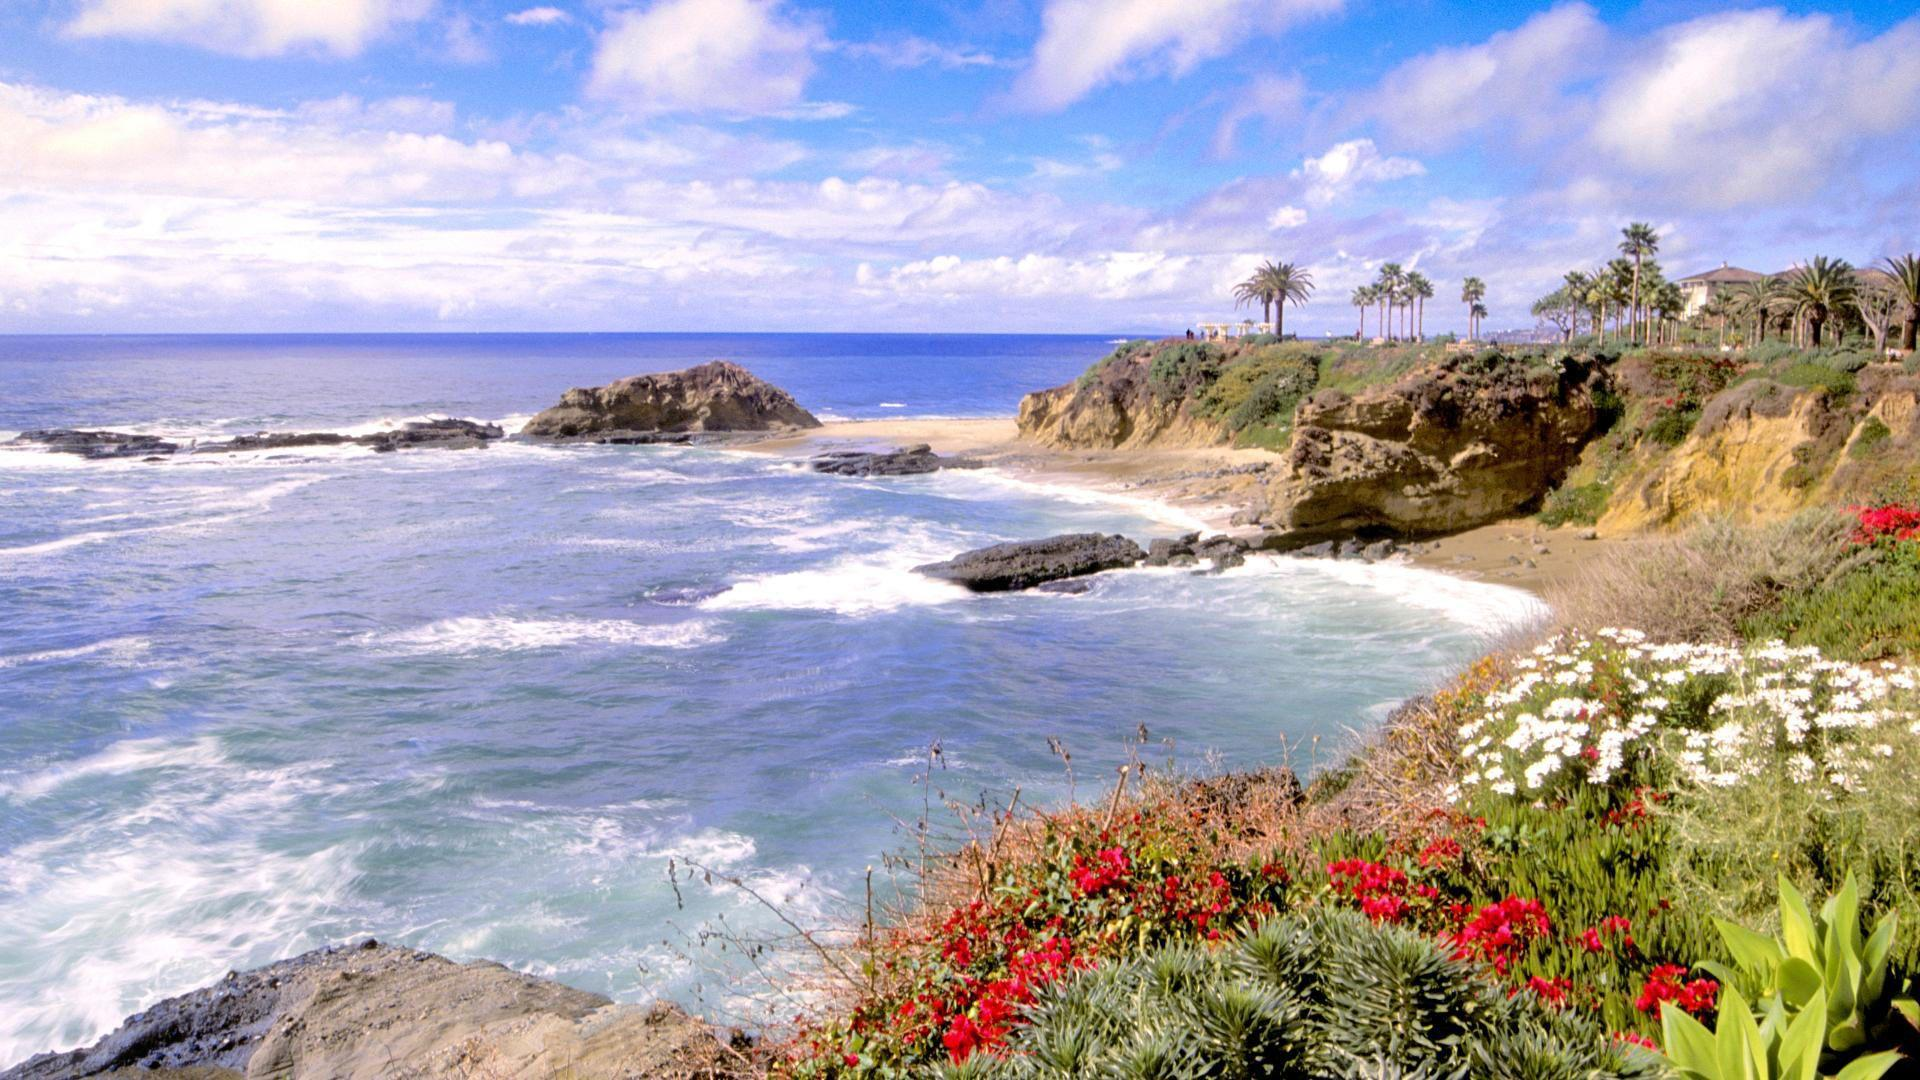 California Beaches Wallpaper - WallpaperSafari